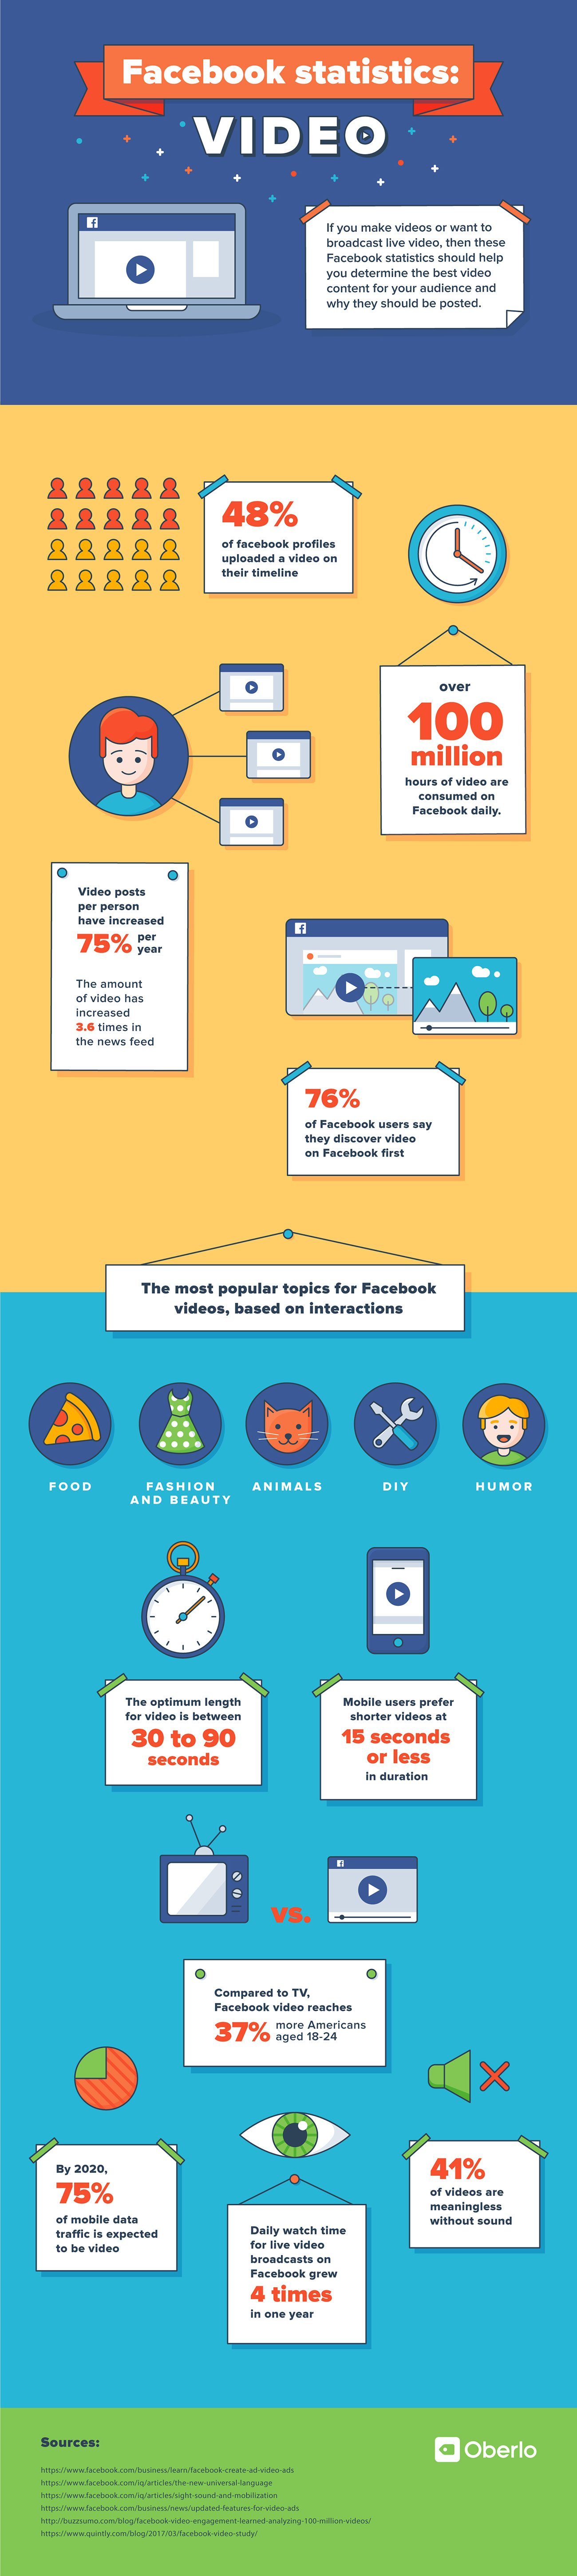 Facebook Video Statistics to Help You Create the Best Content for Your Audience